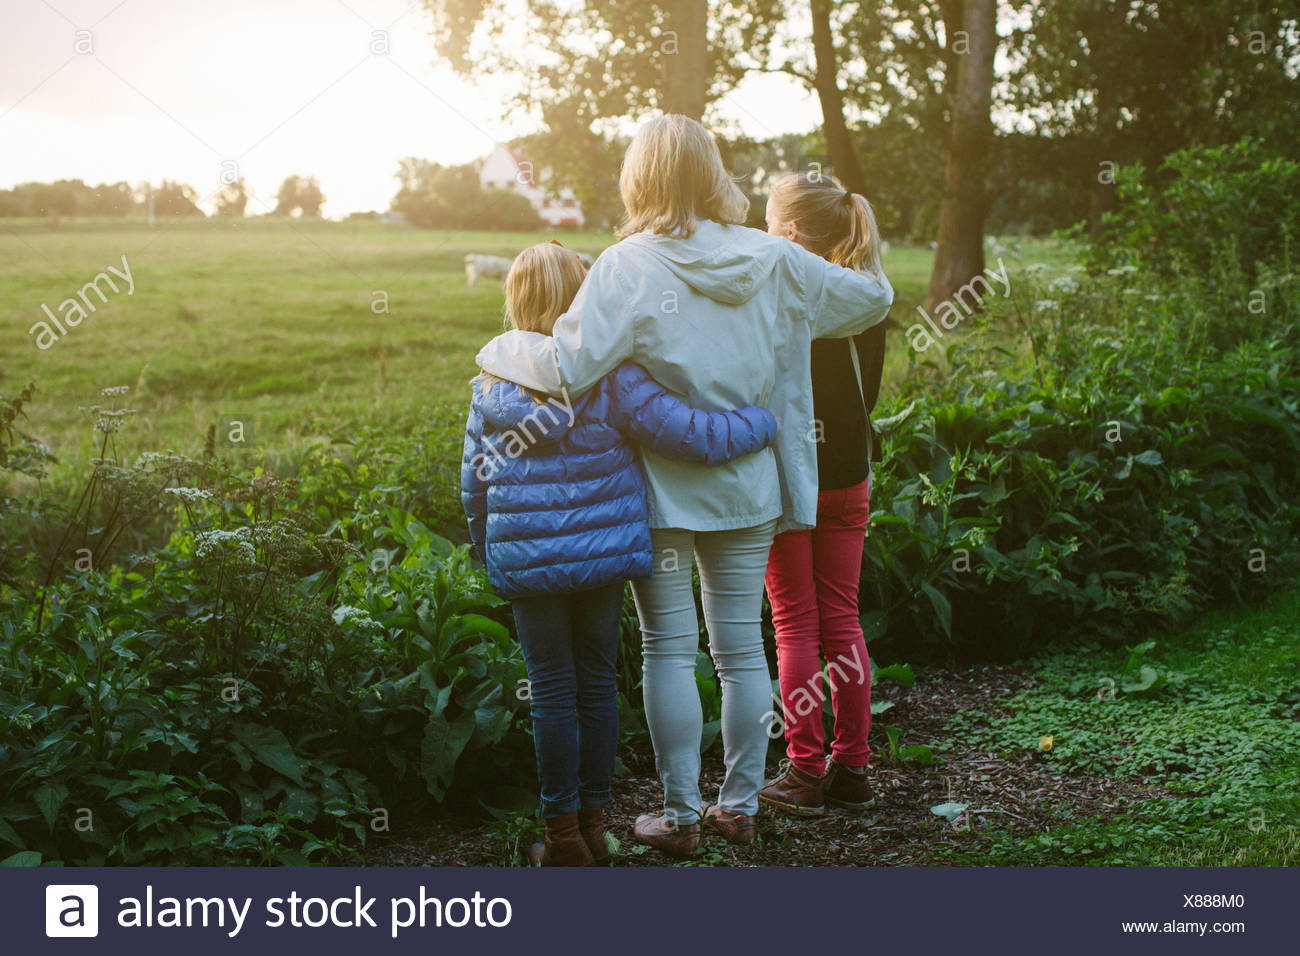 Grandmother and granddaughters looking at field - Stock Image